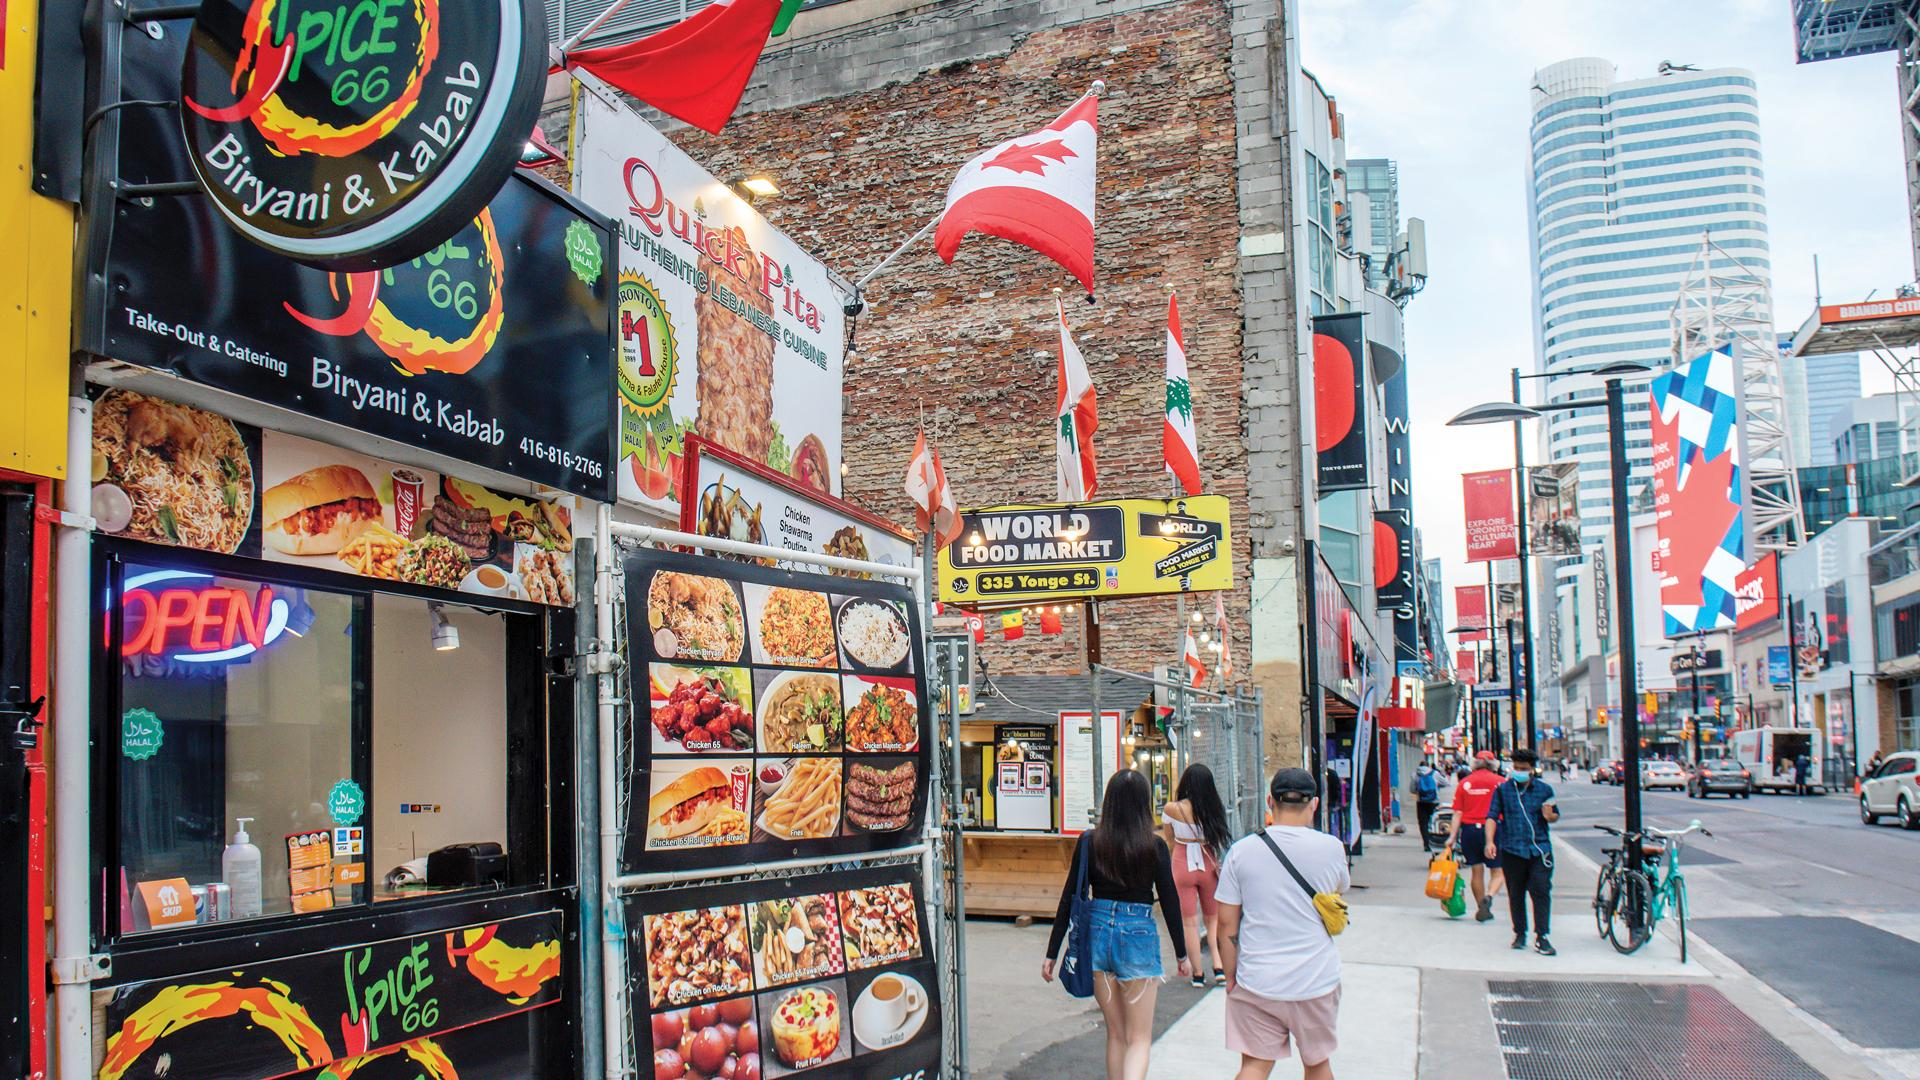 The best Toronto food markets   Spice 66 at the World Food Market